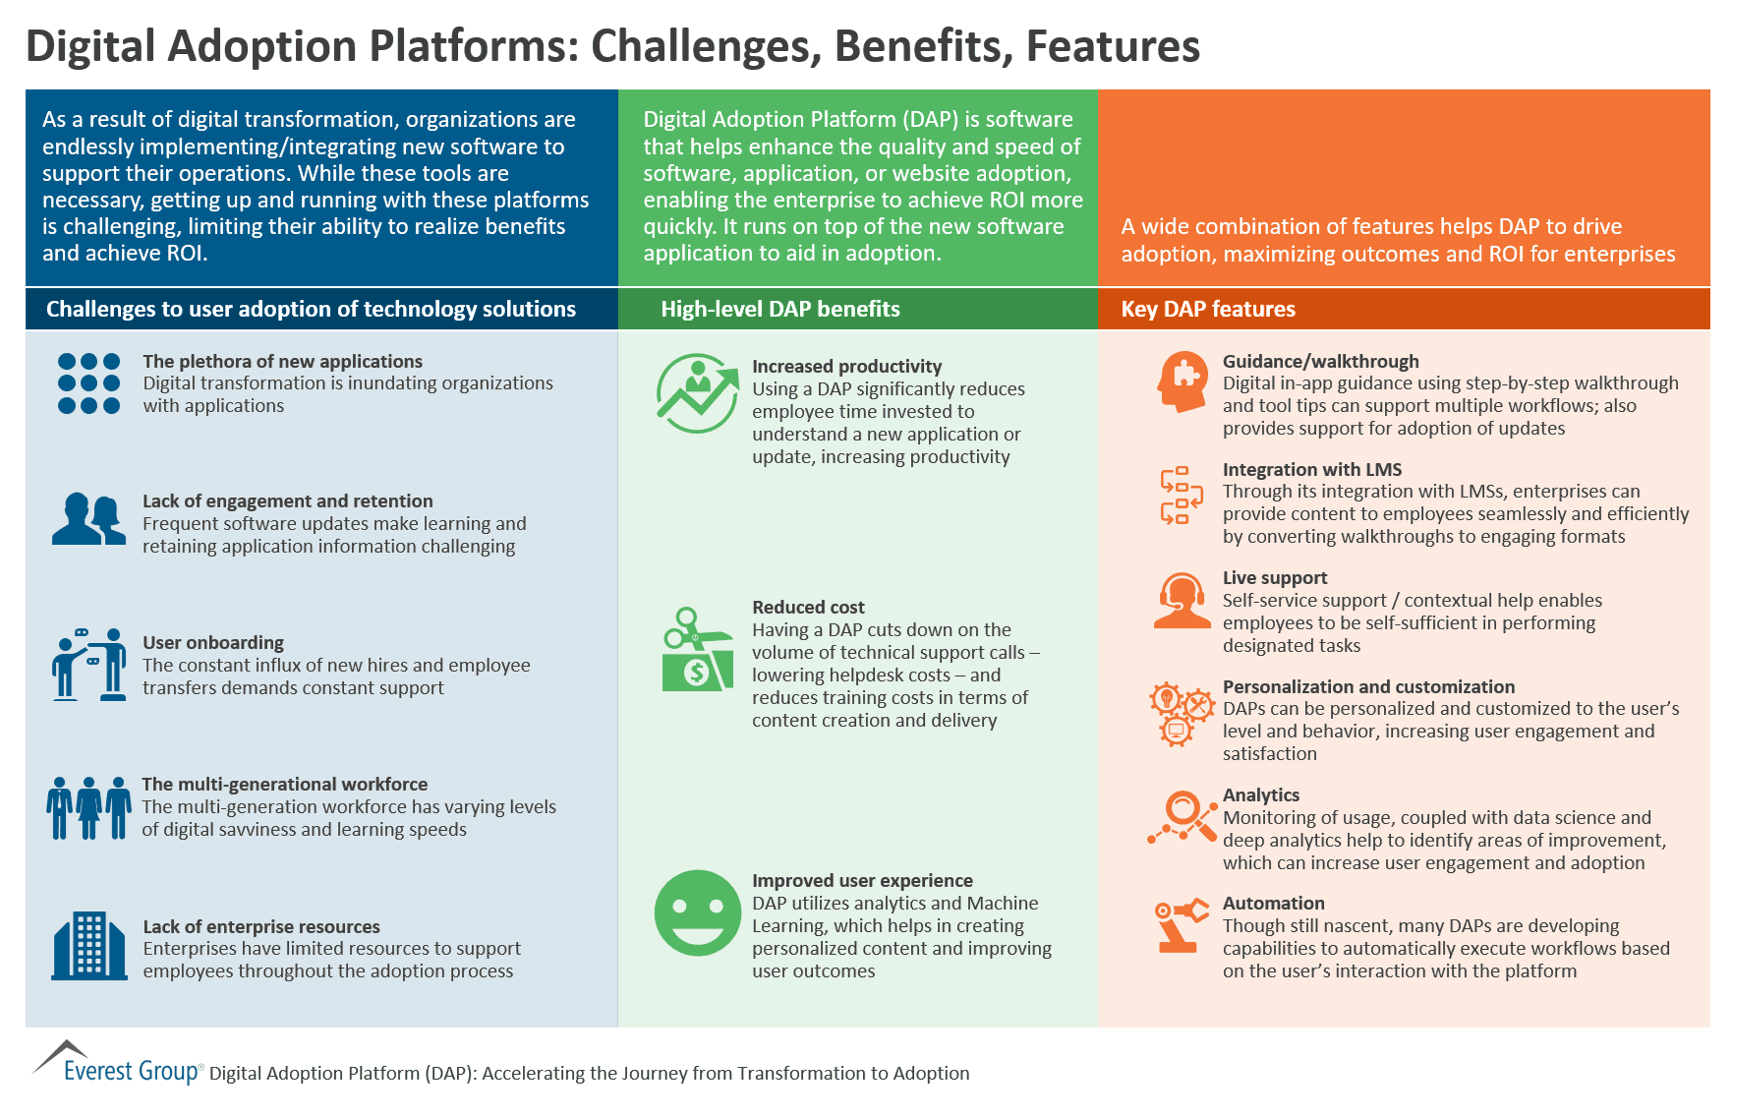 Digital Adoption Platforms - Challenges, Benefits, Features